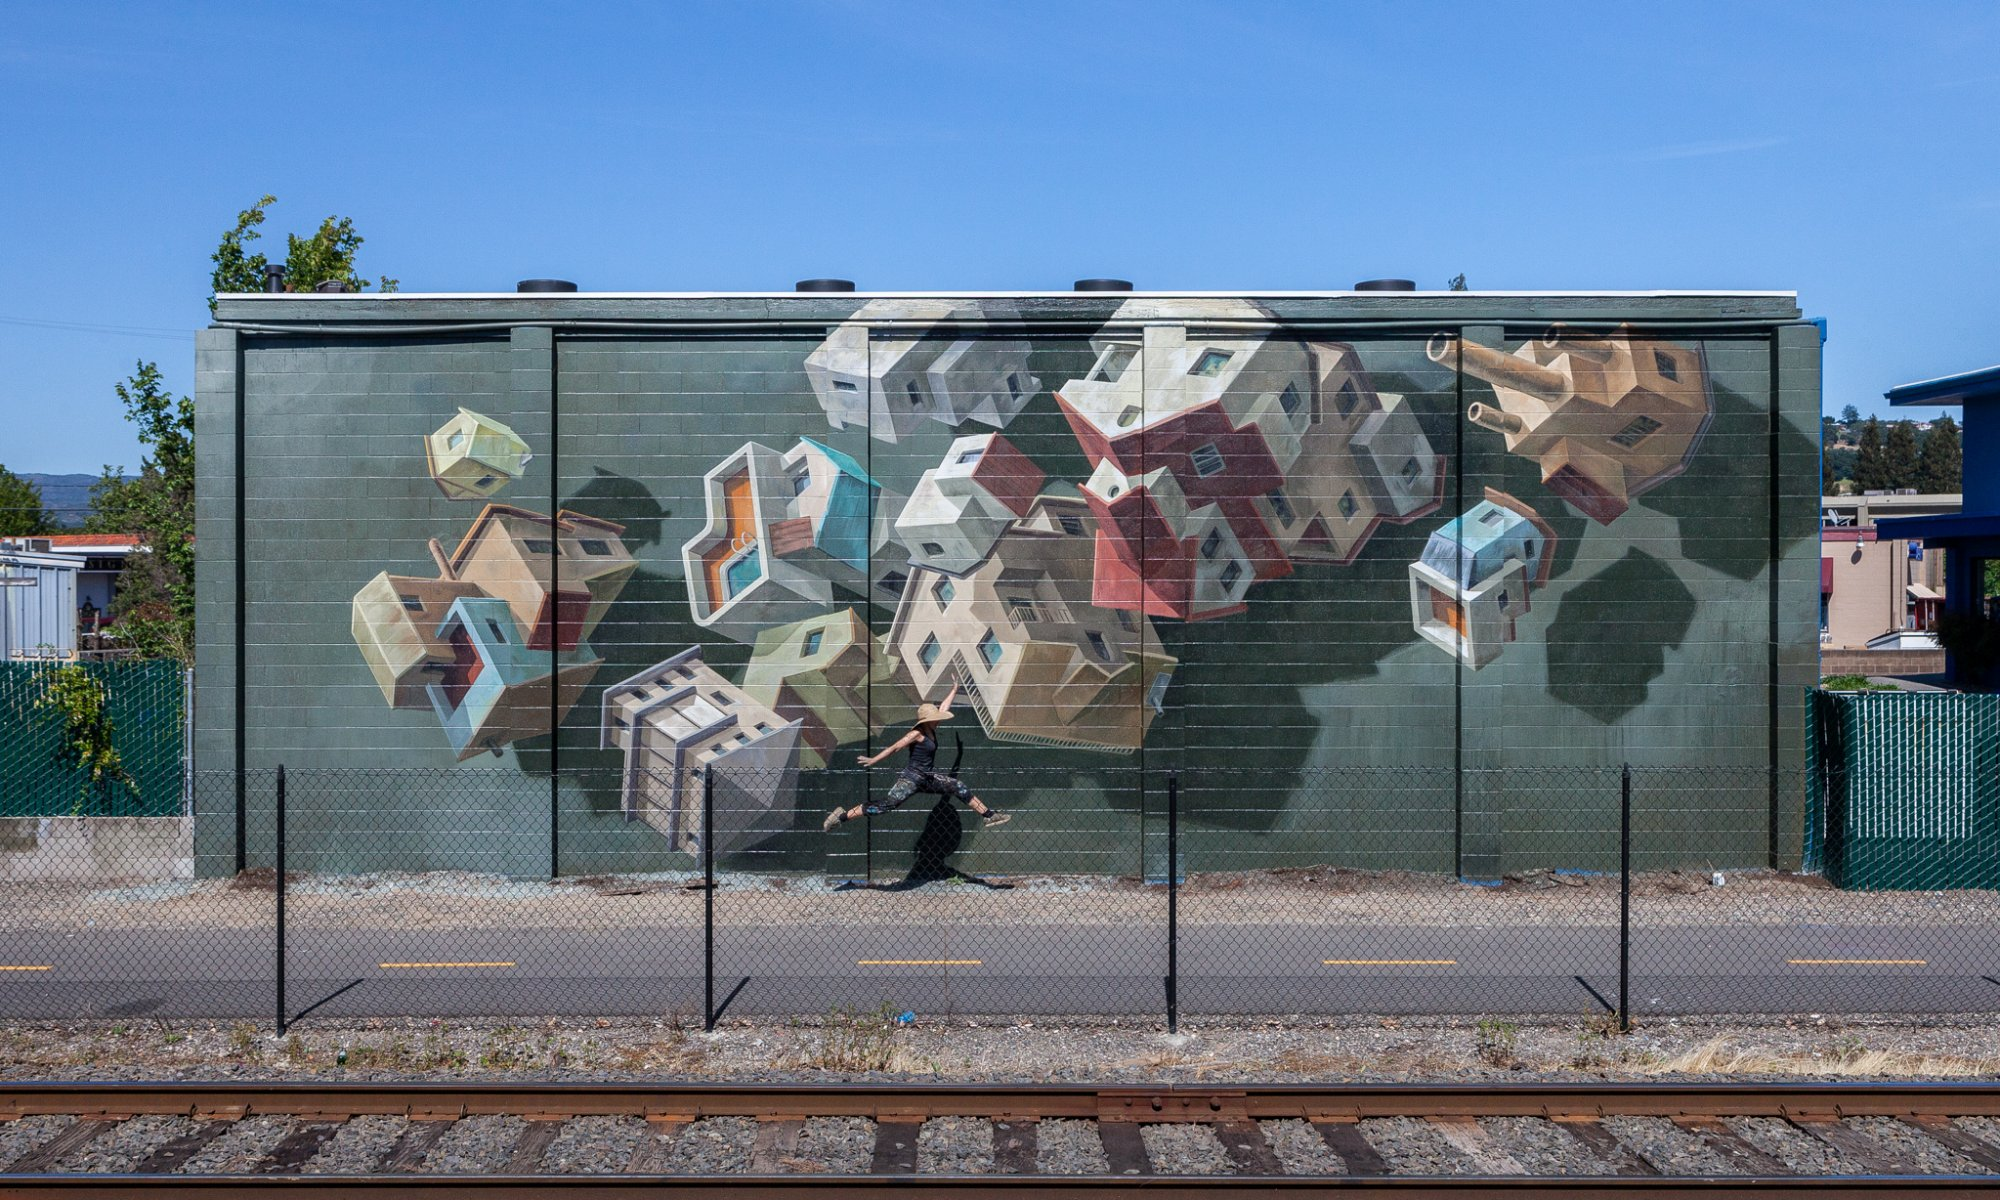 A woman leaps in front of a modern mural.